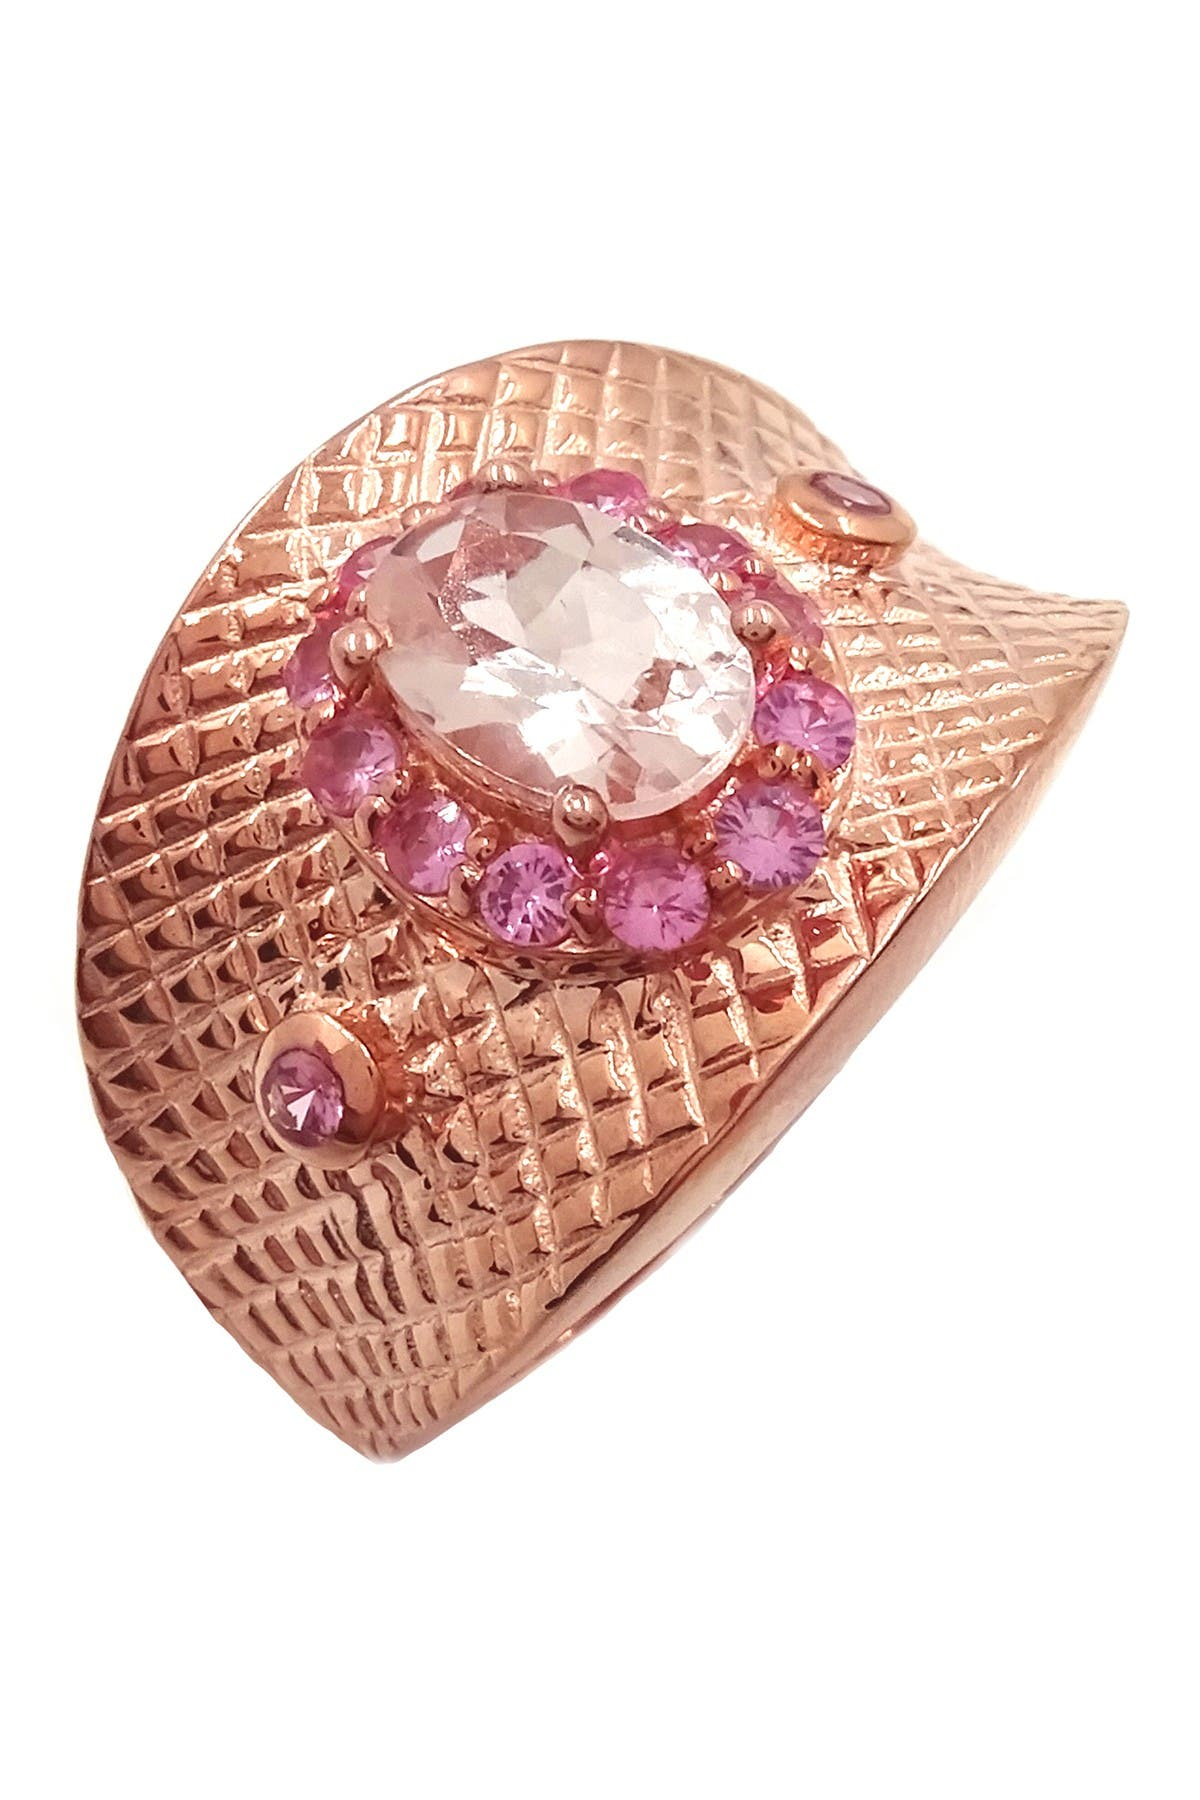 Image of Savvy Cie 18K Rose Gold Vermeil Morganite & Pink Spinel Ring